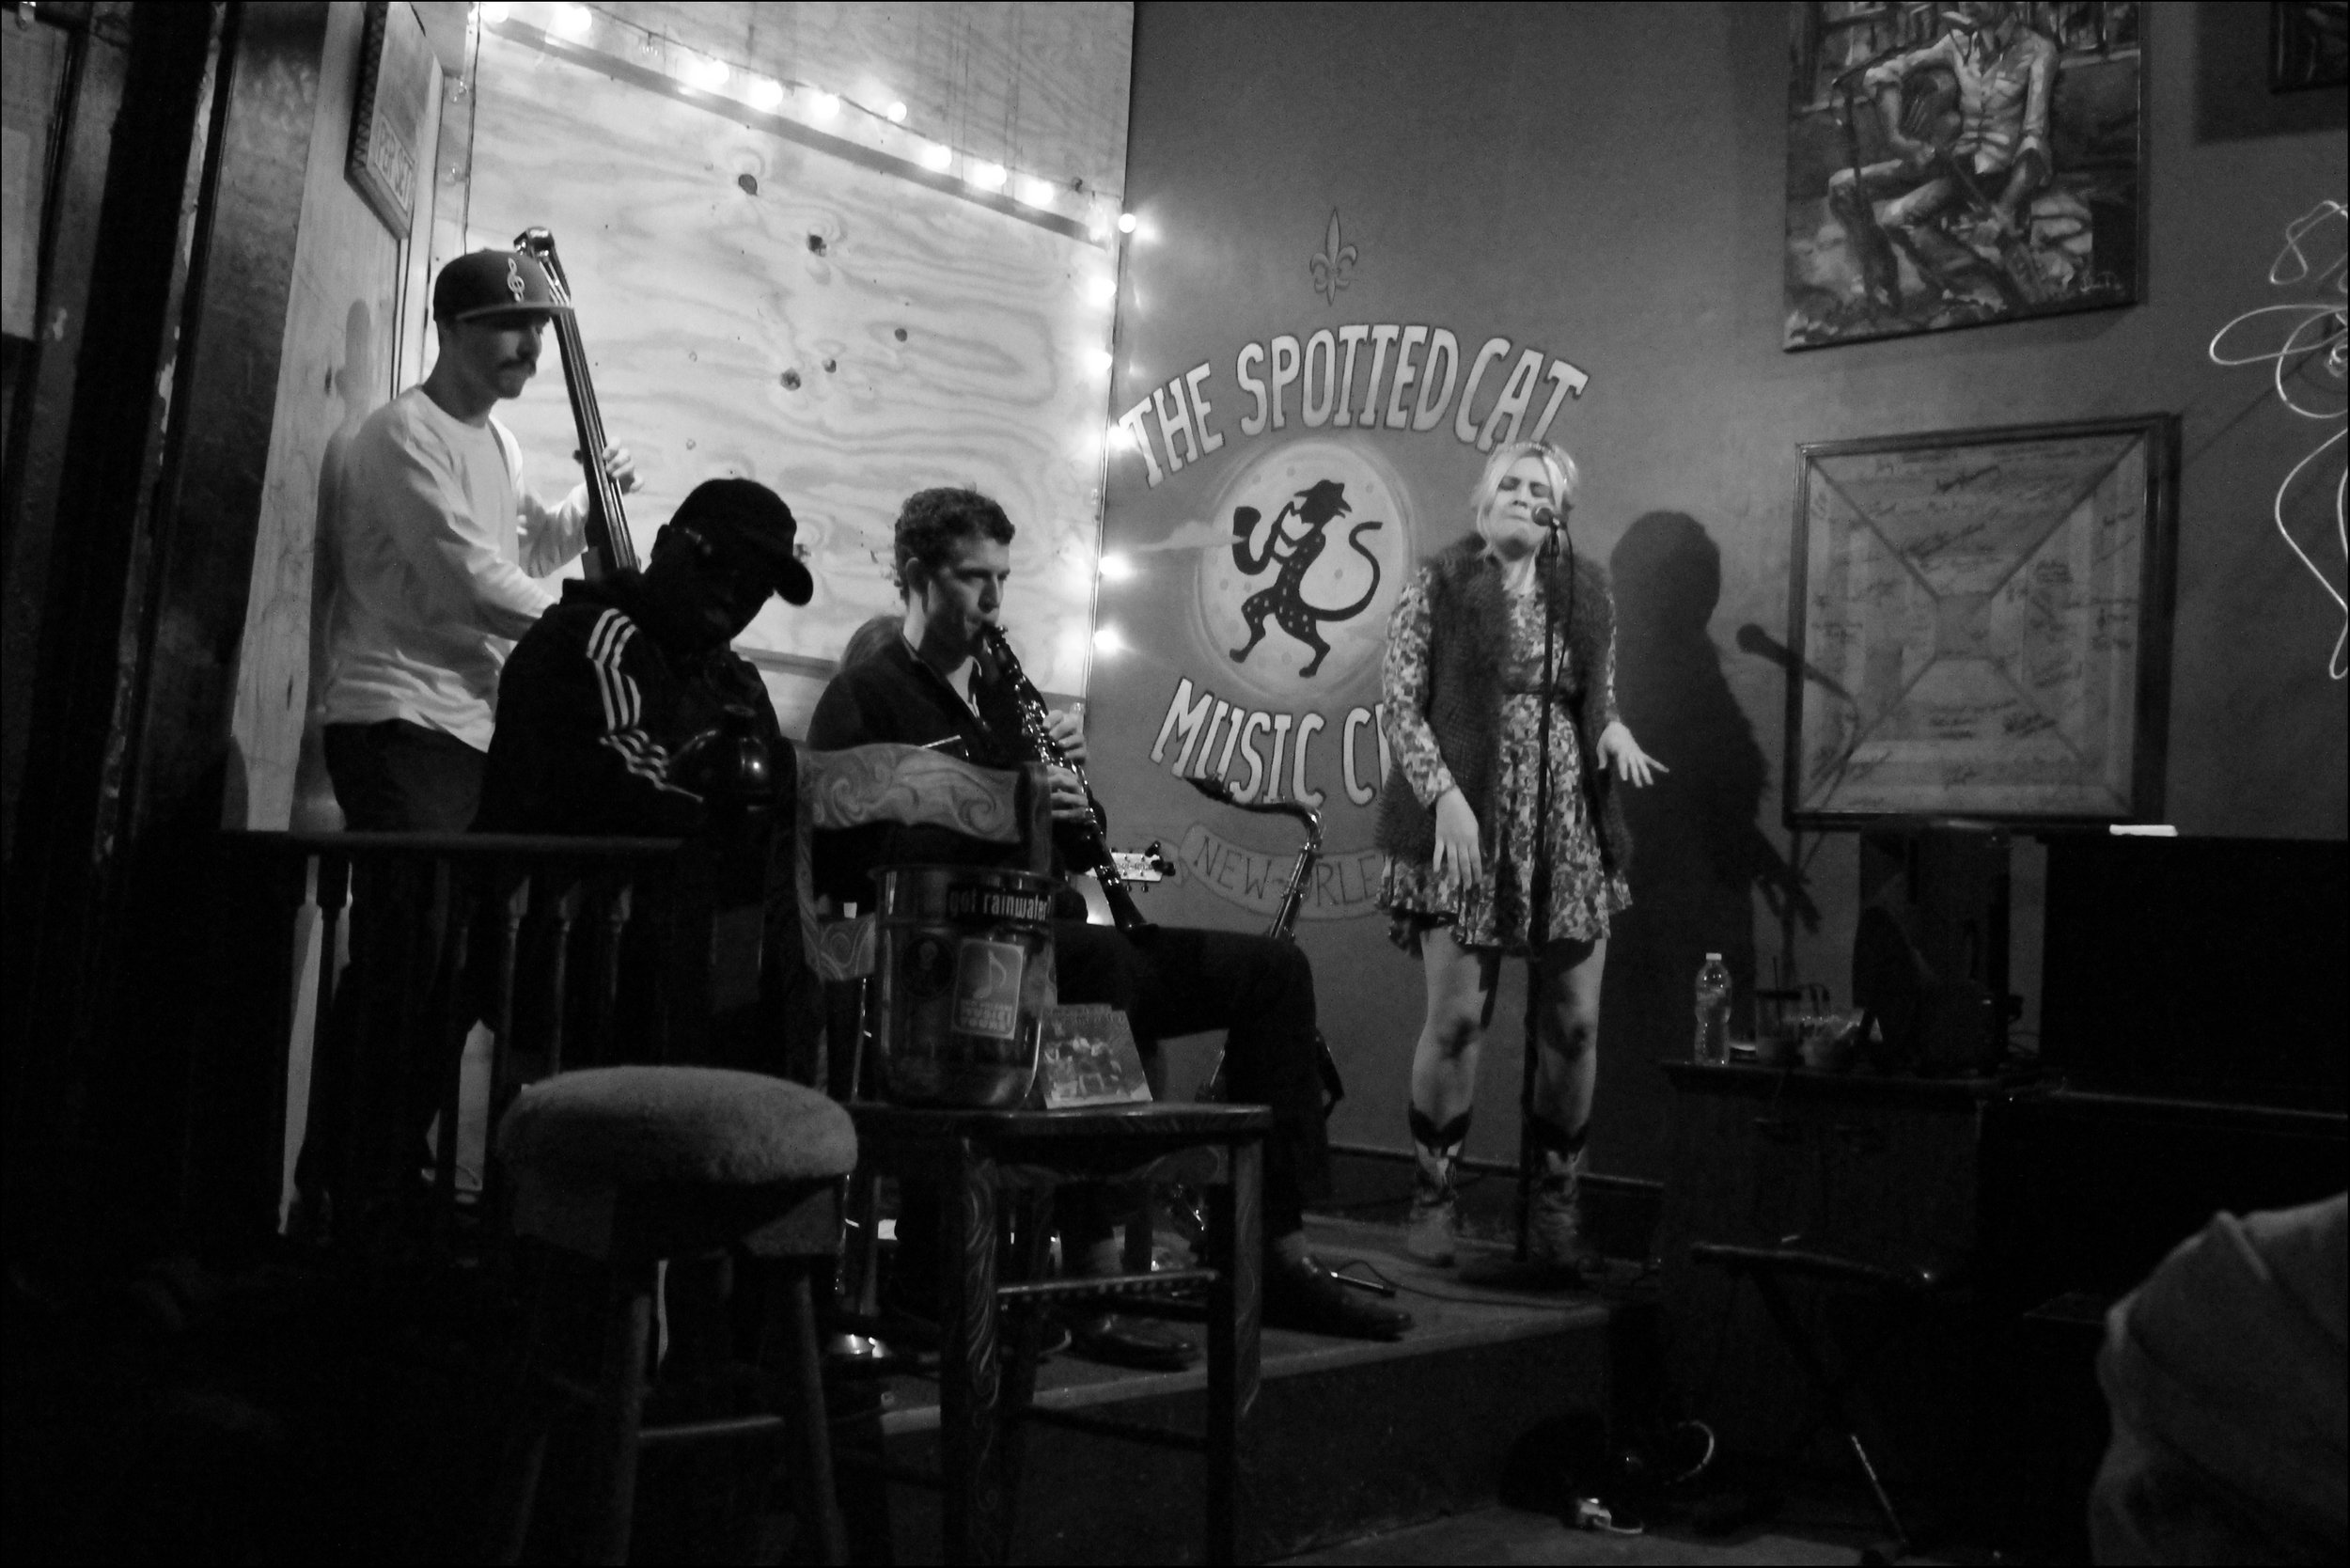 The Spotted Cat Music Club, New Orleans LA, 2014